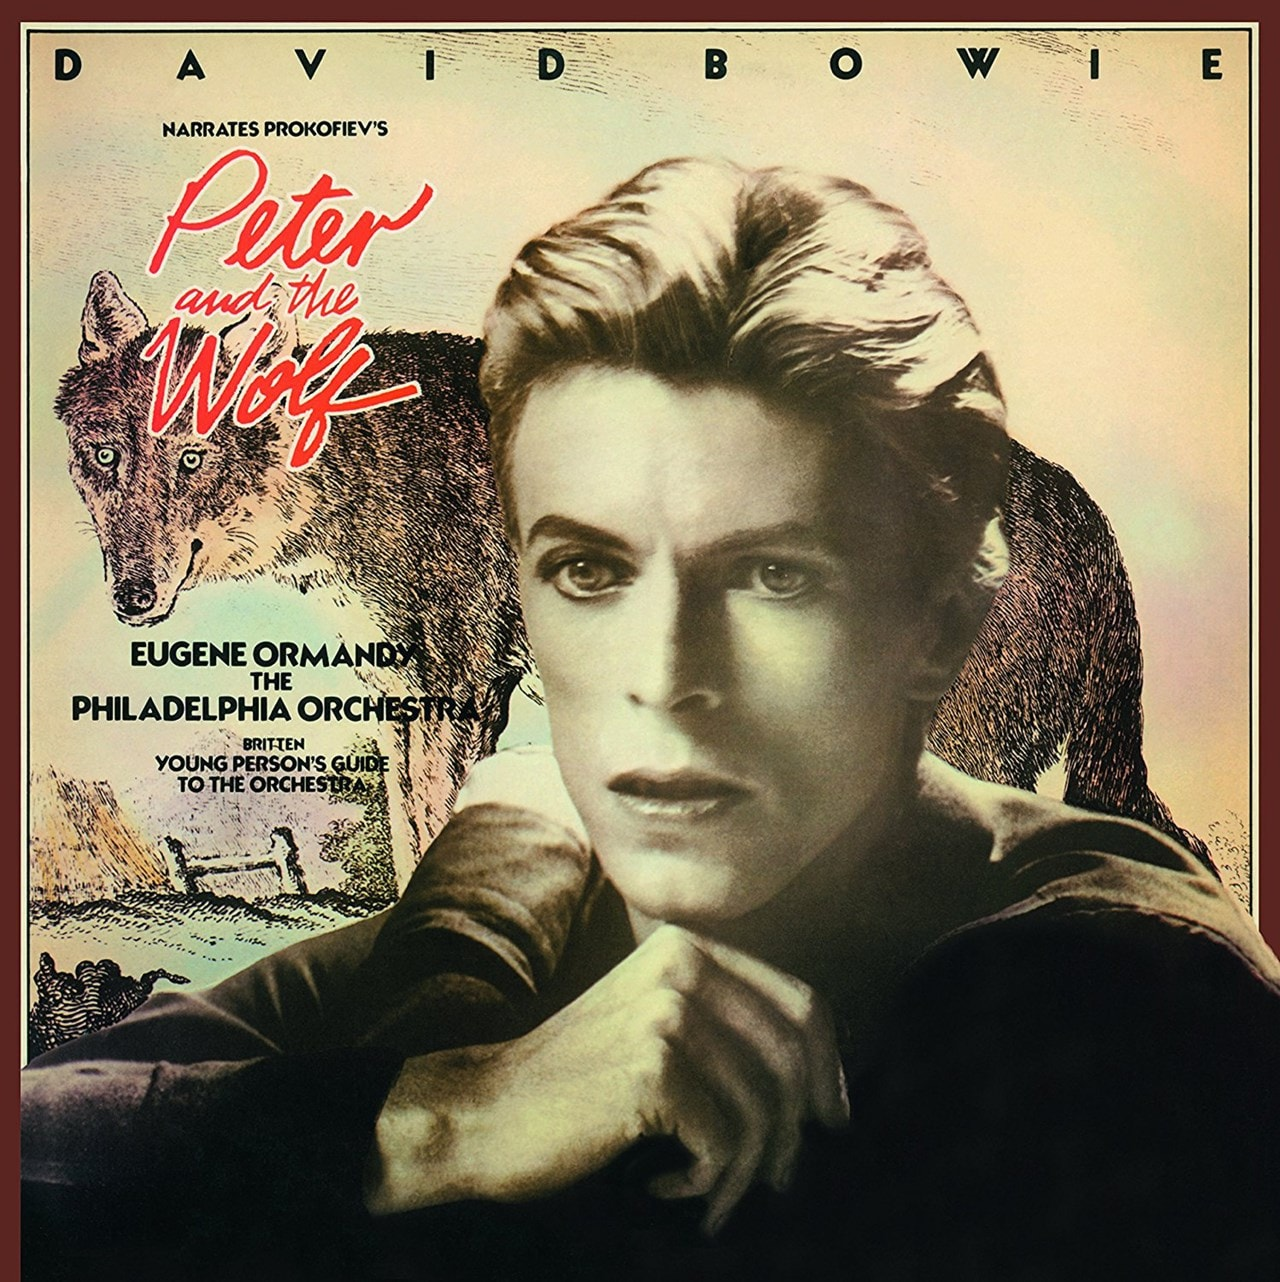 David Bowie Narrates Prokofiev's Peter and the Wolf - 1